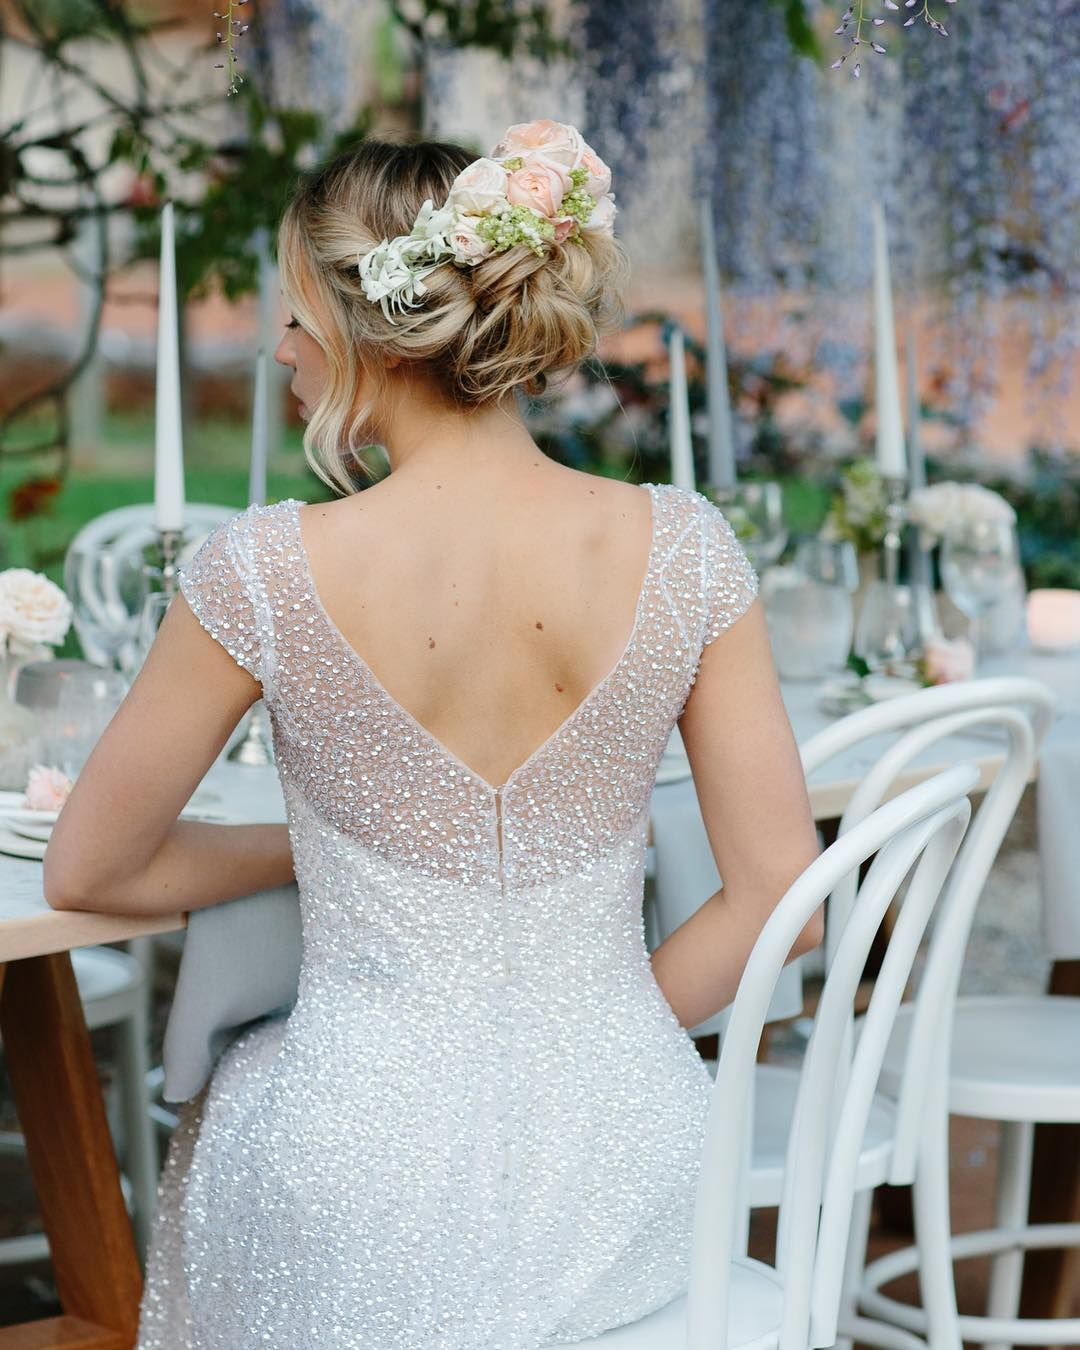 Anna Campbell 2019 Wedding Dresses: The Sydney, Worn With A Boned Silk Bodice Underlay, And